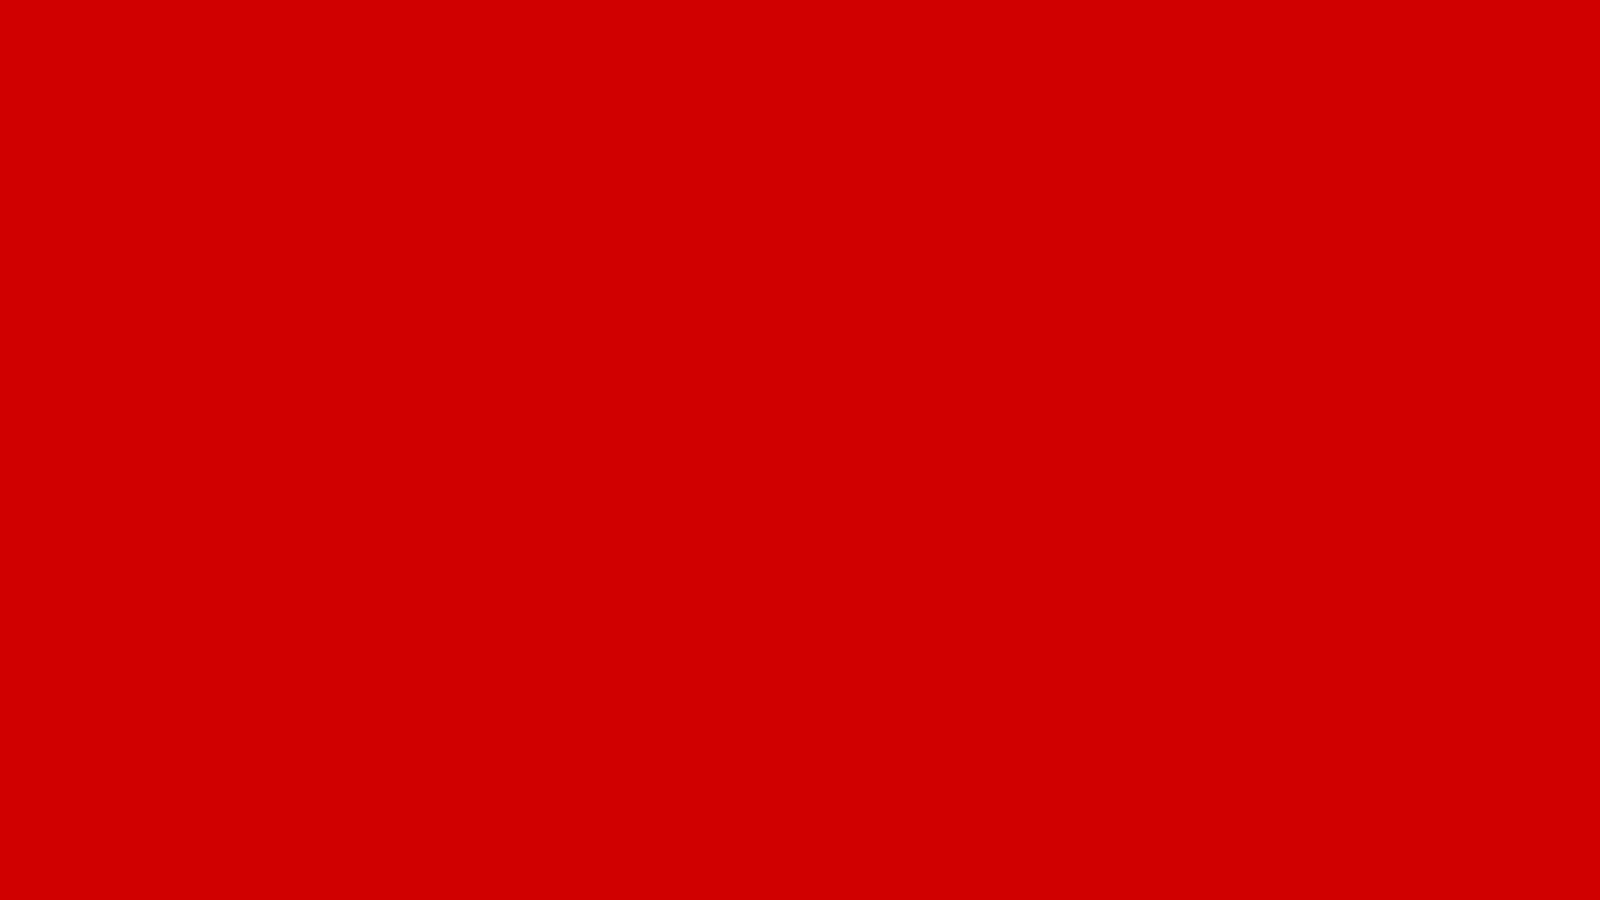 1600x900 Boston University Red Solid Color Background